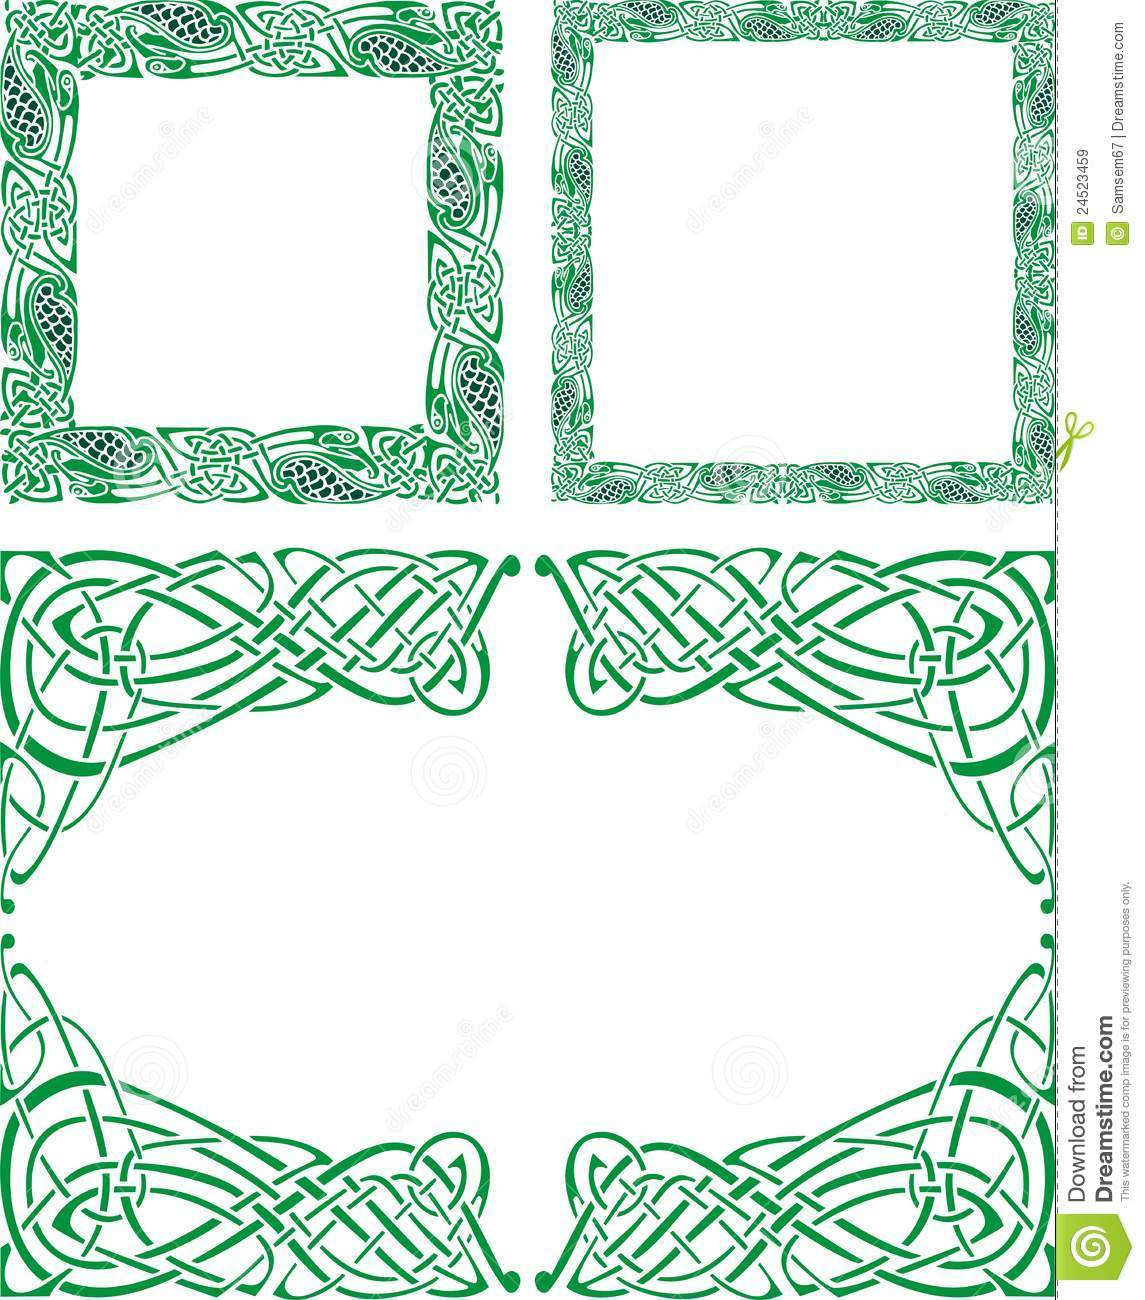 Celtic Ornament Borders Royalty Free Stock Images Image